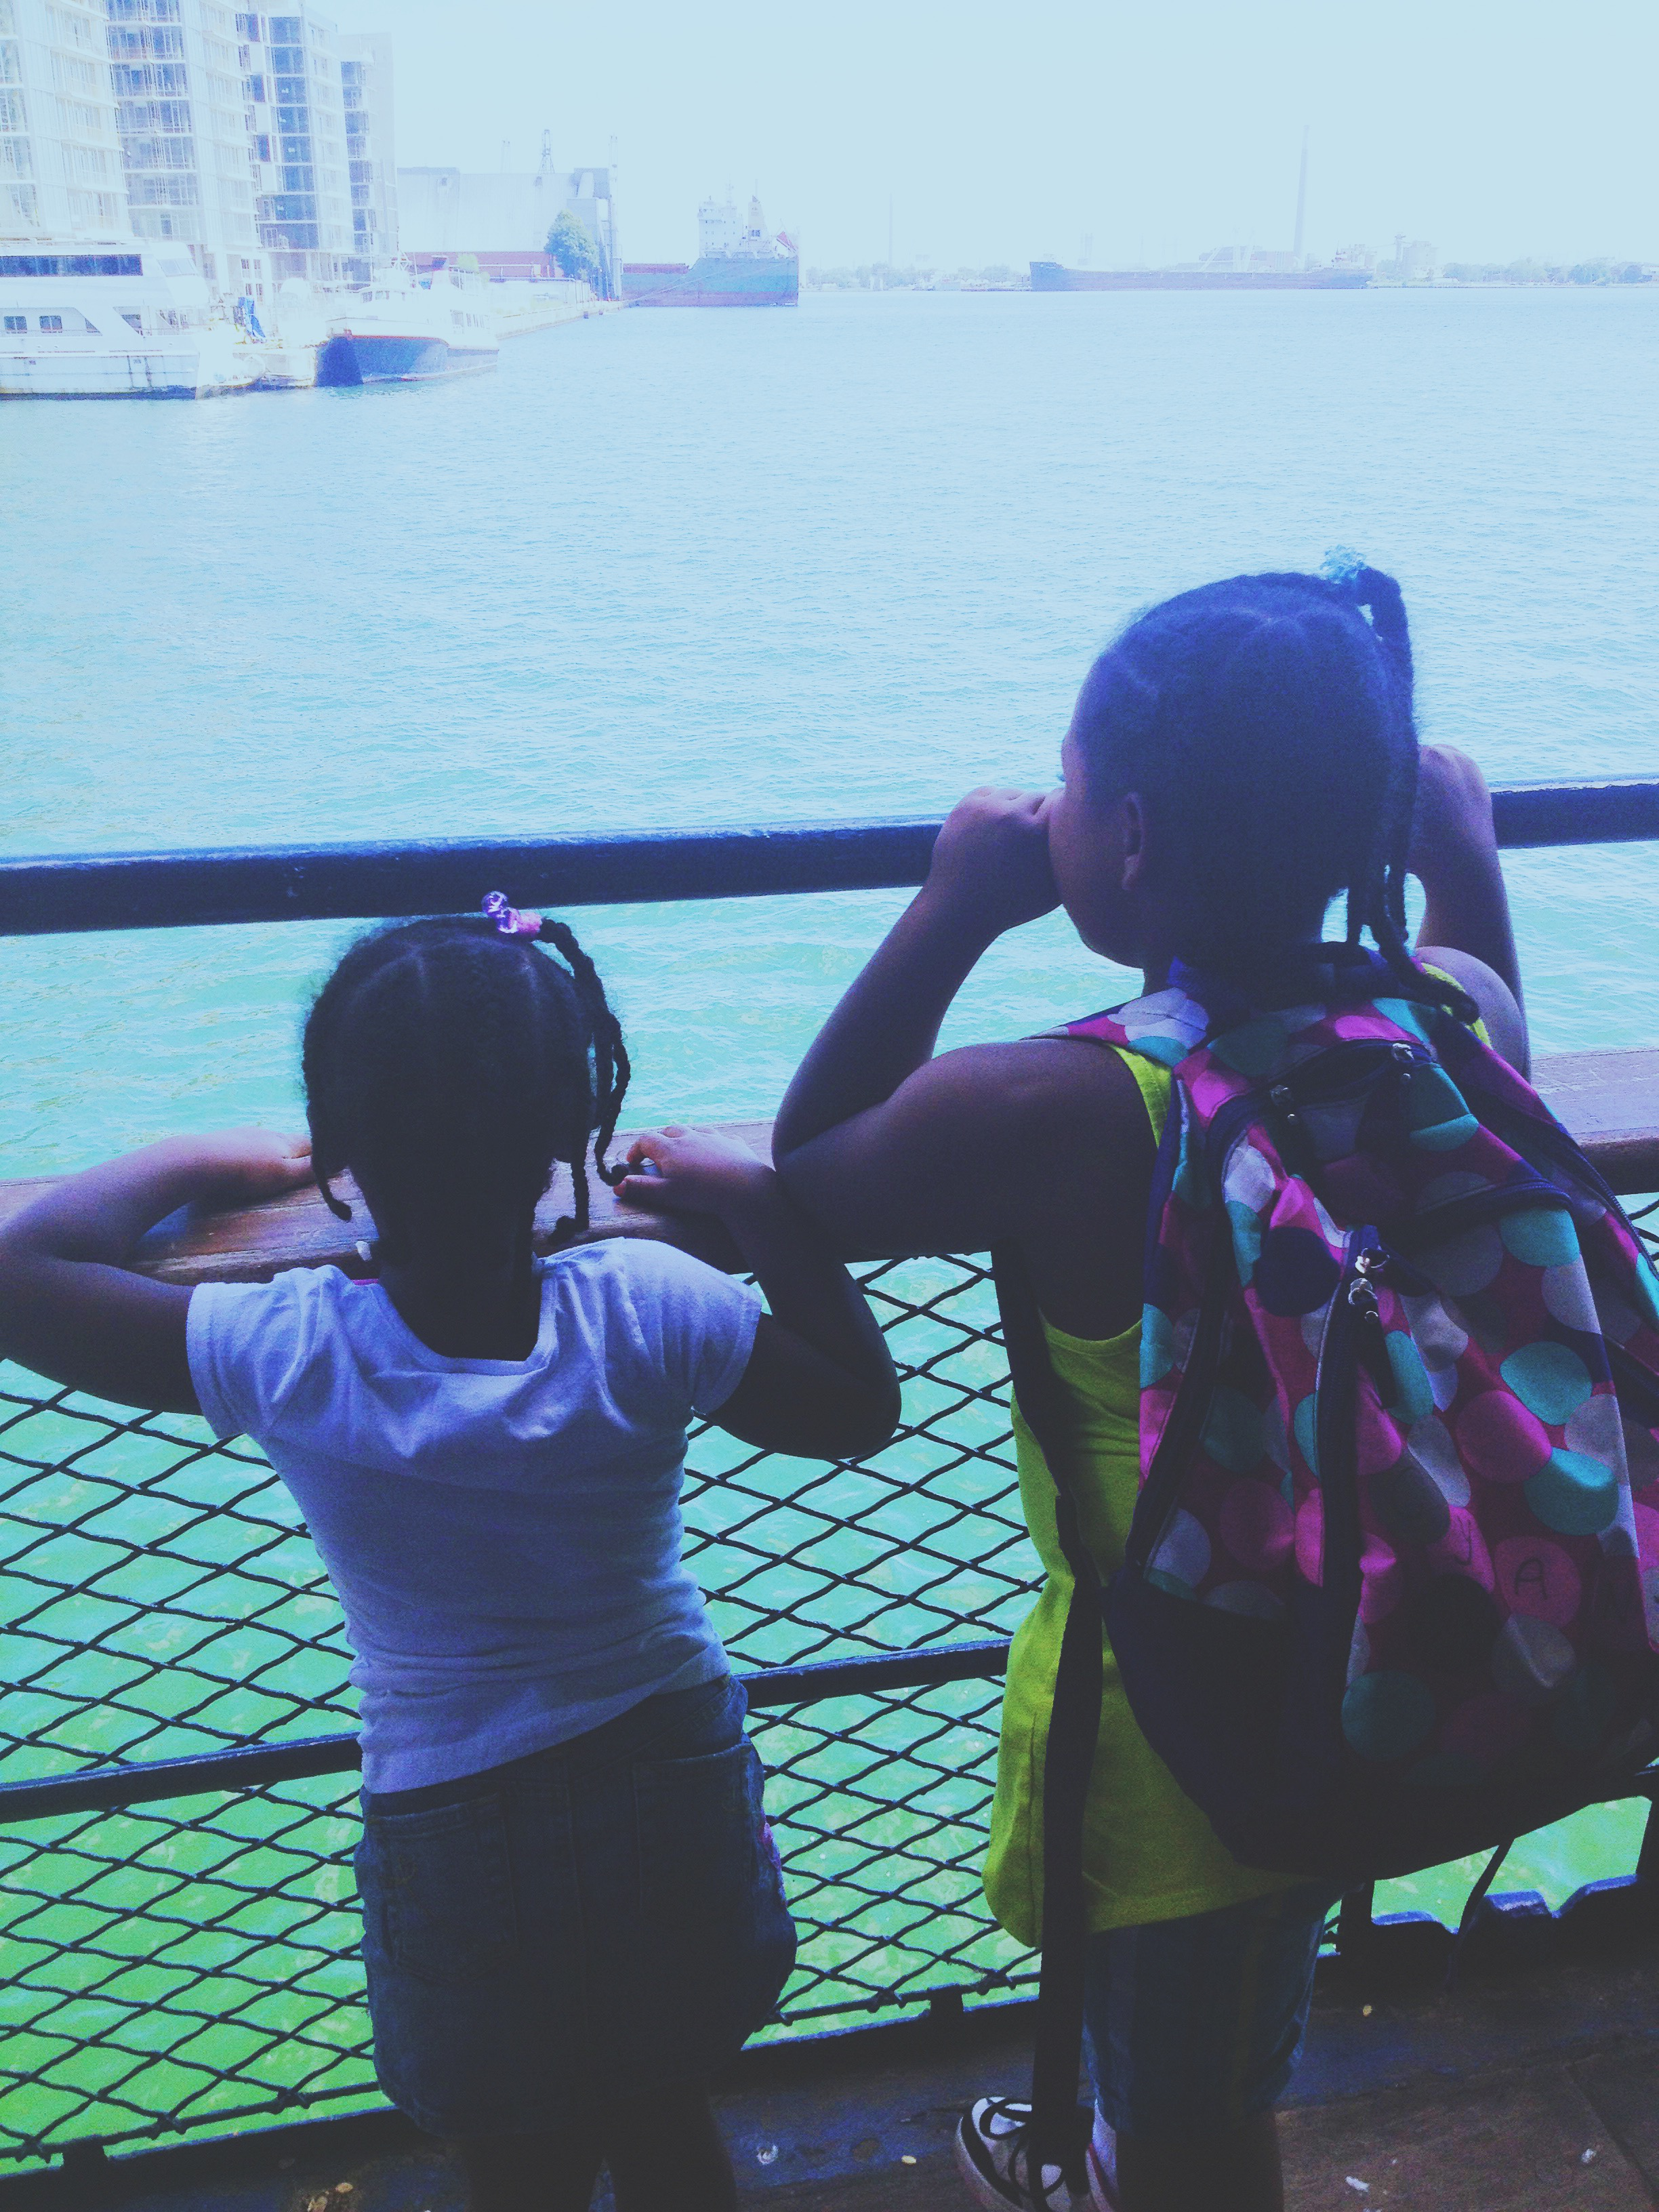 Angels on the ferry.